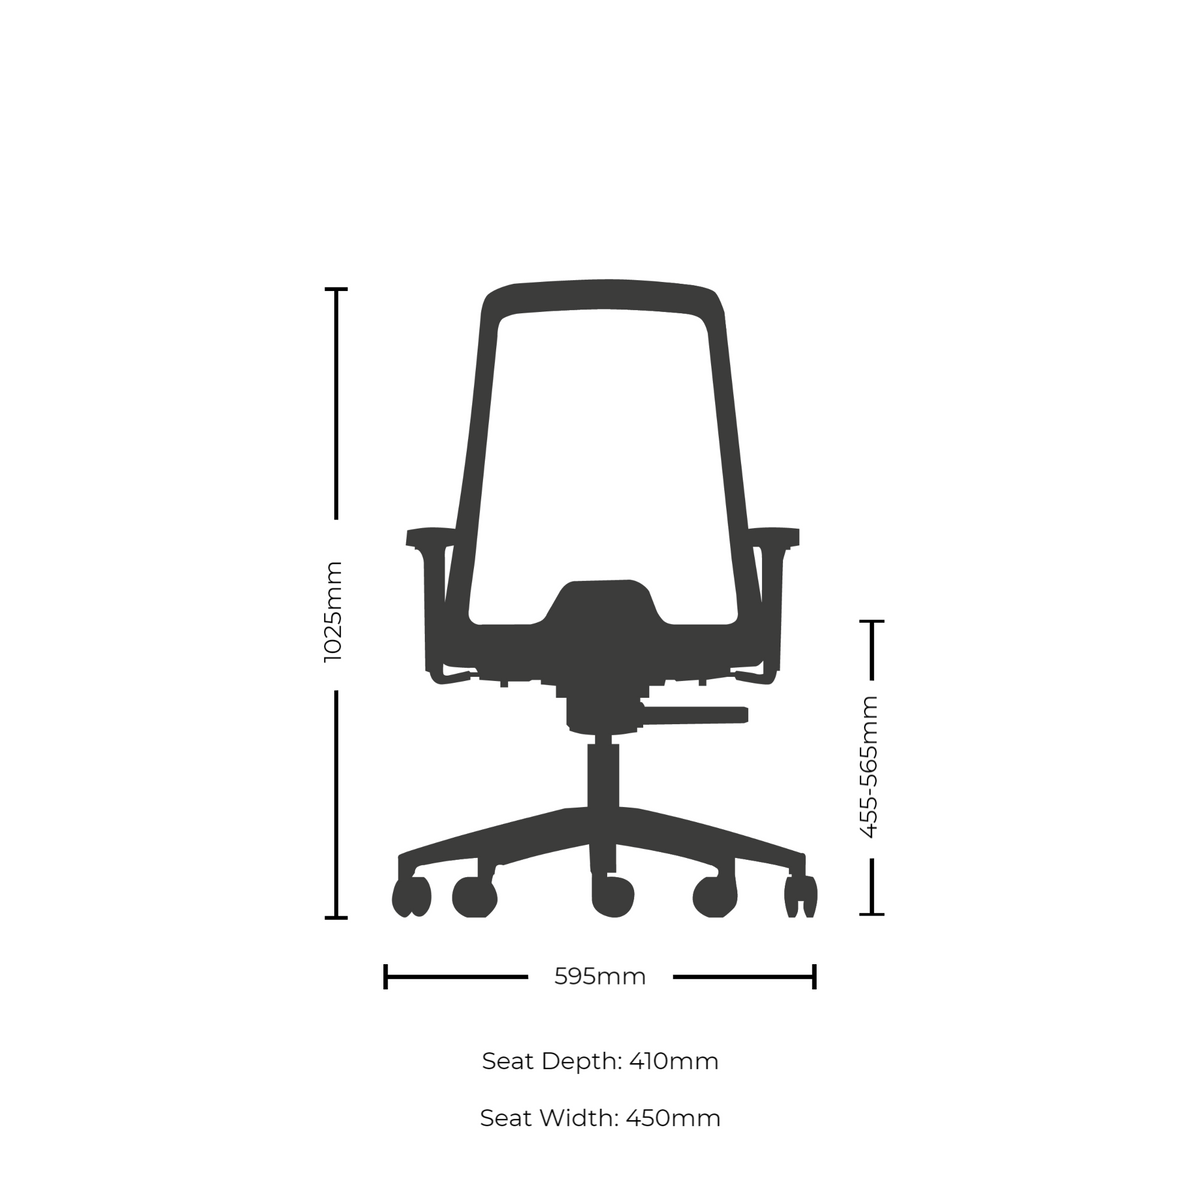 Dimensions for Interstuhl Buddy Conference Office Chair